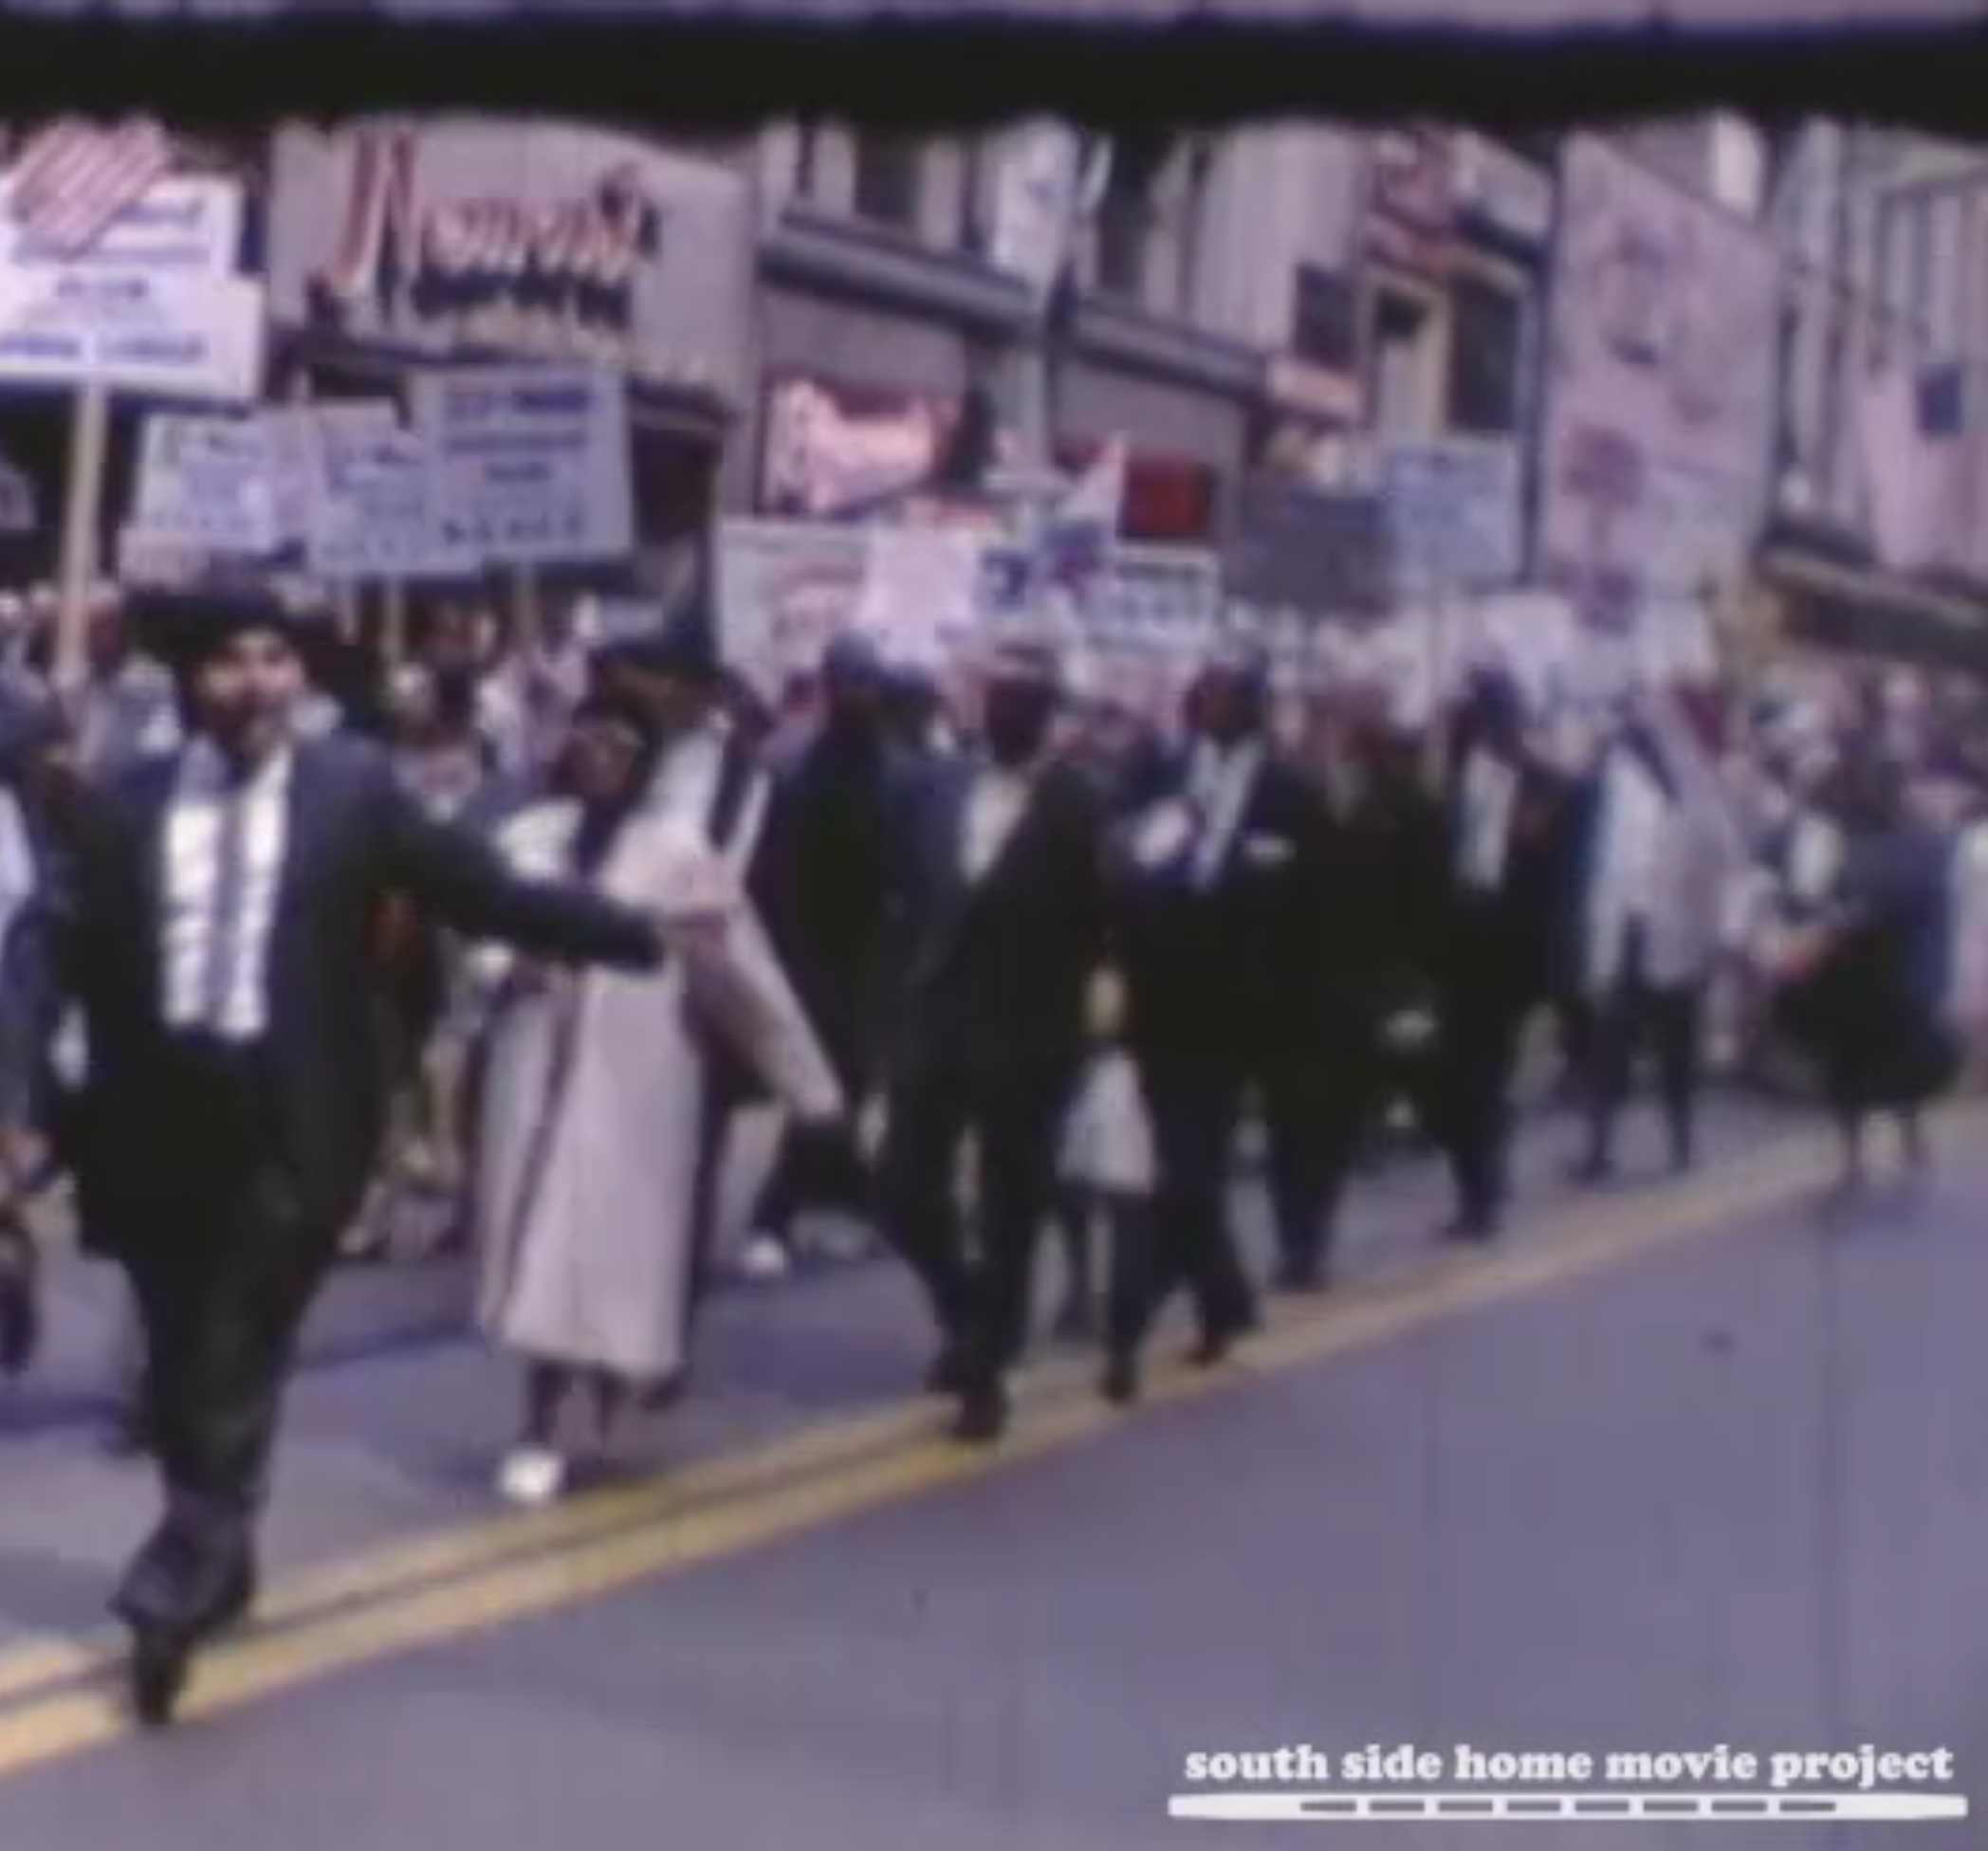 Image from the NAACP Annual Convention July 4th Parade, 1963, from the Nicholas Osborn Collection, courtesy of the South Side Home Movie Project.